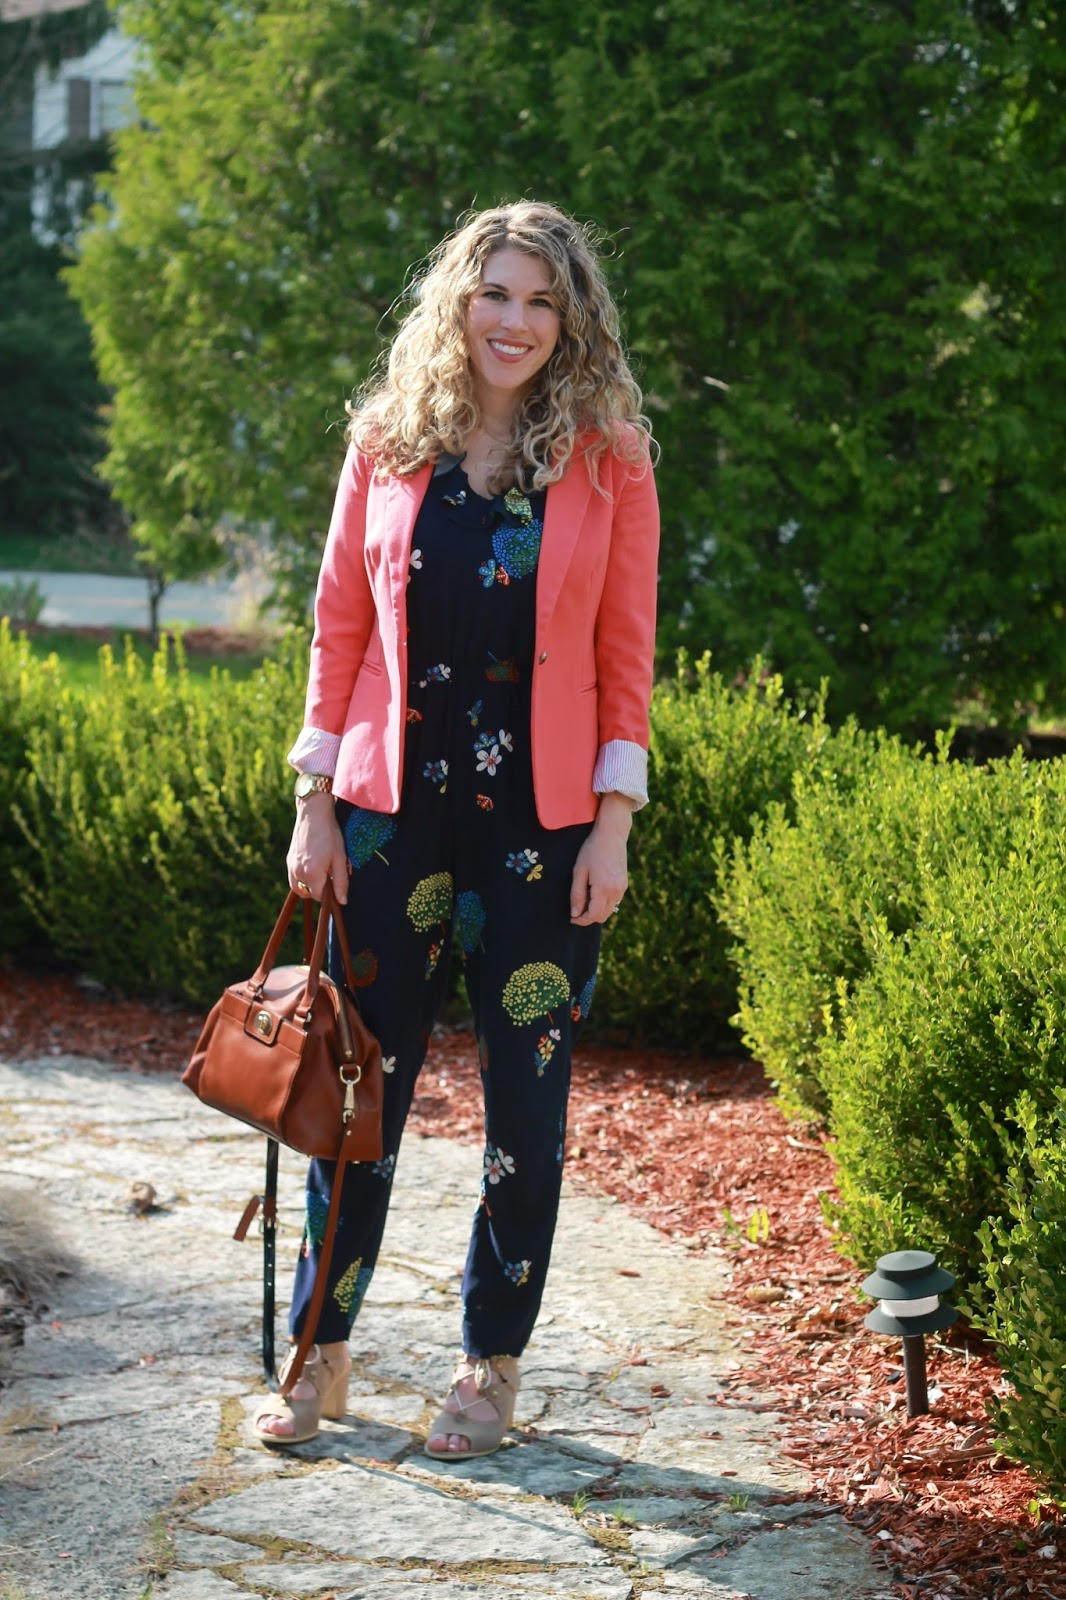 LOFT hummingbird jumpsuit, coral blazer, floral jumpsuit, LOFT purchases, shopping haul